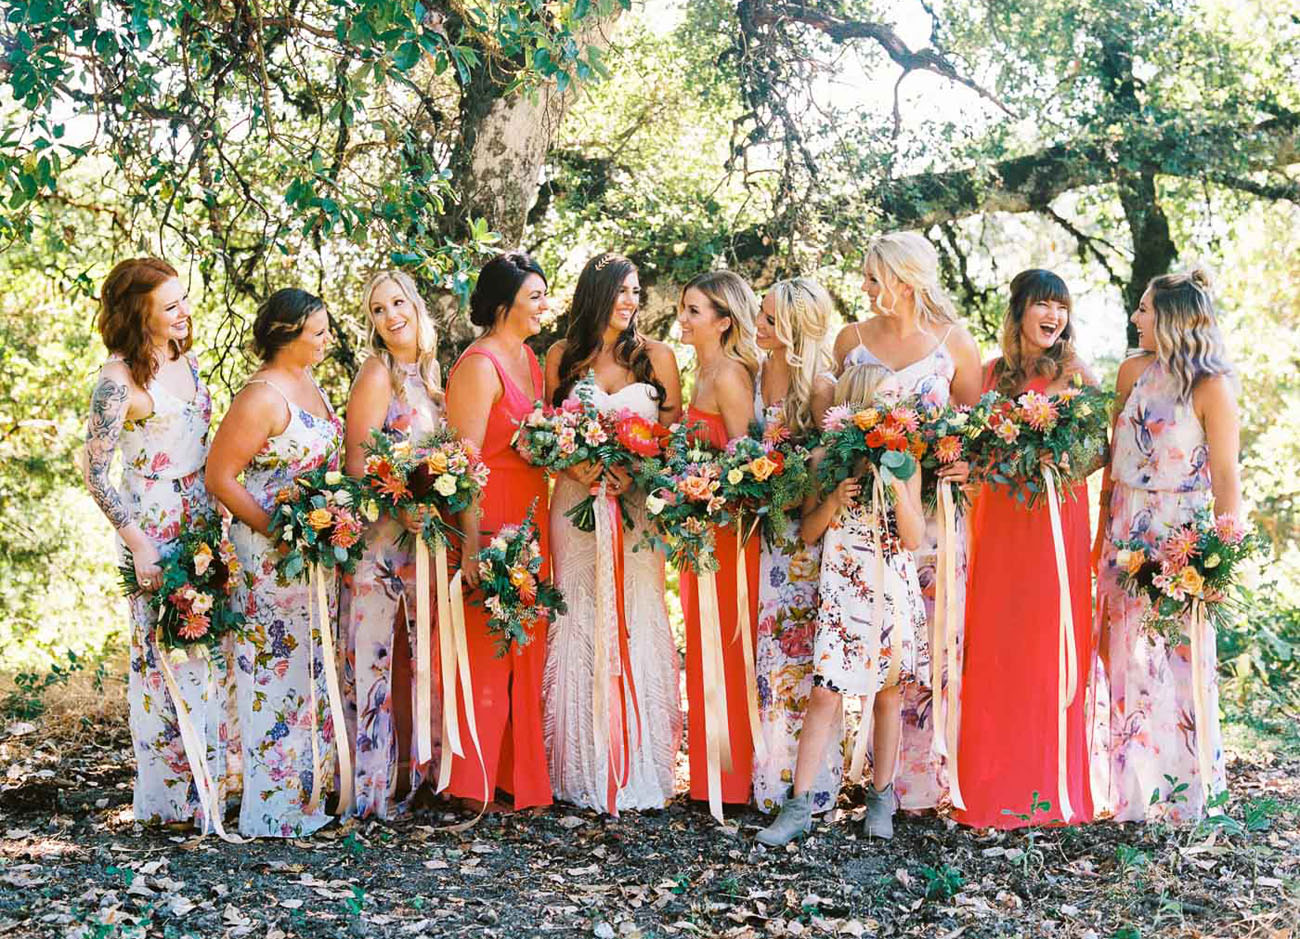 Rustic + Colorful Bohemian Wedding: Kelly + Ben